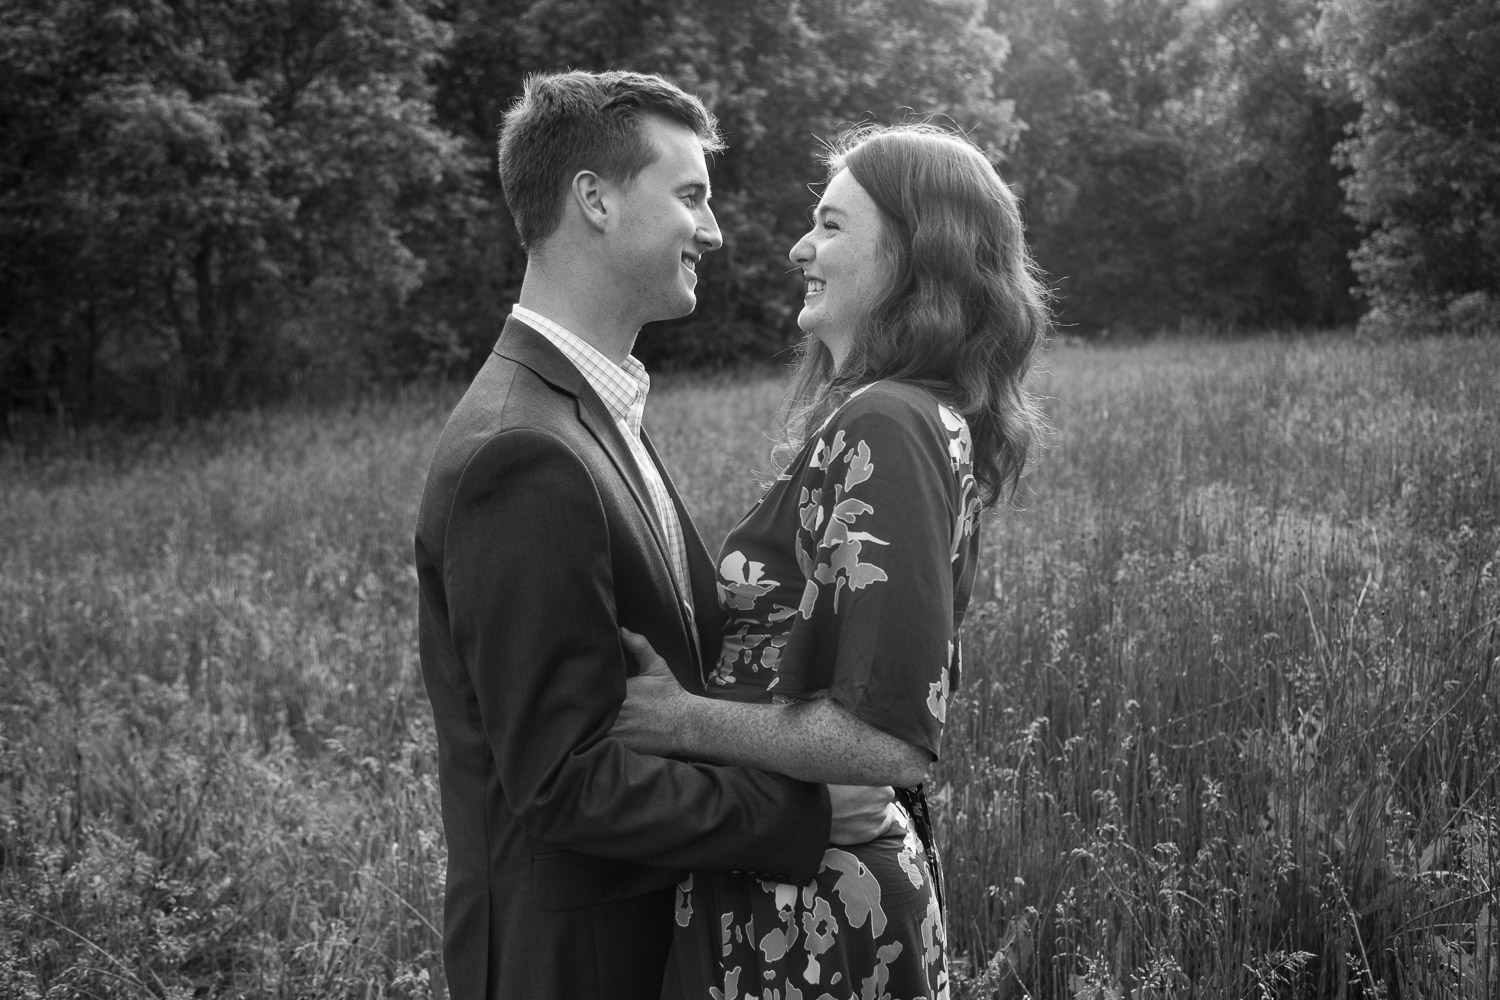 provo-engagement-photography-5070.jpg